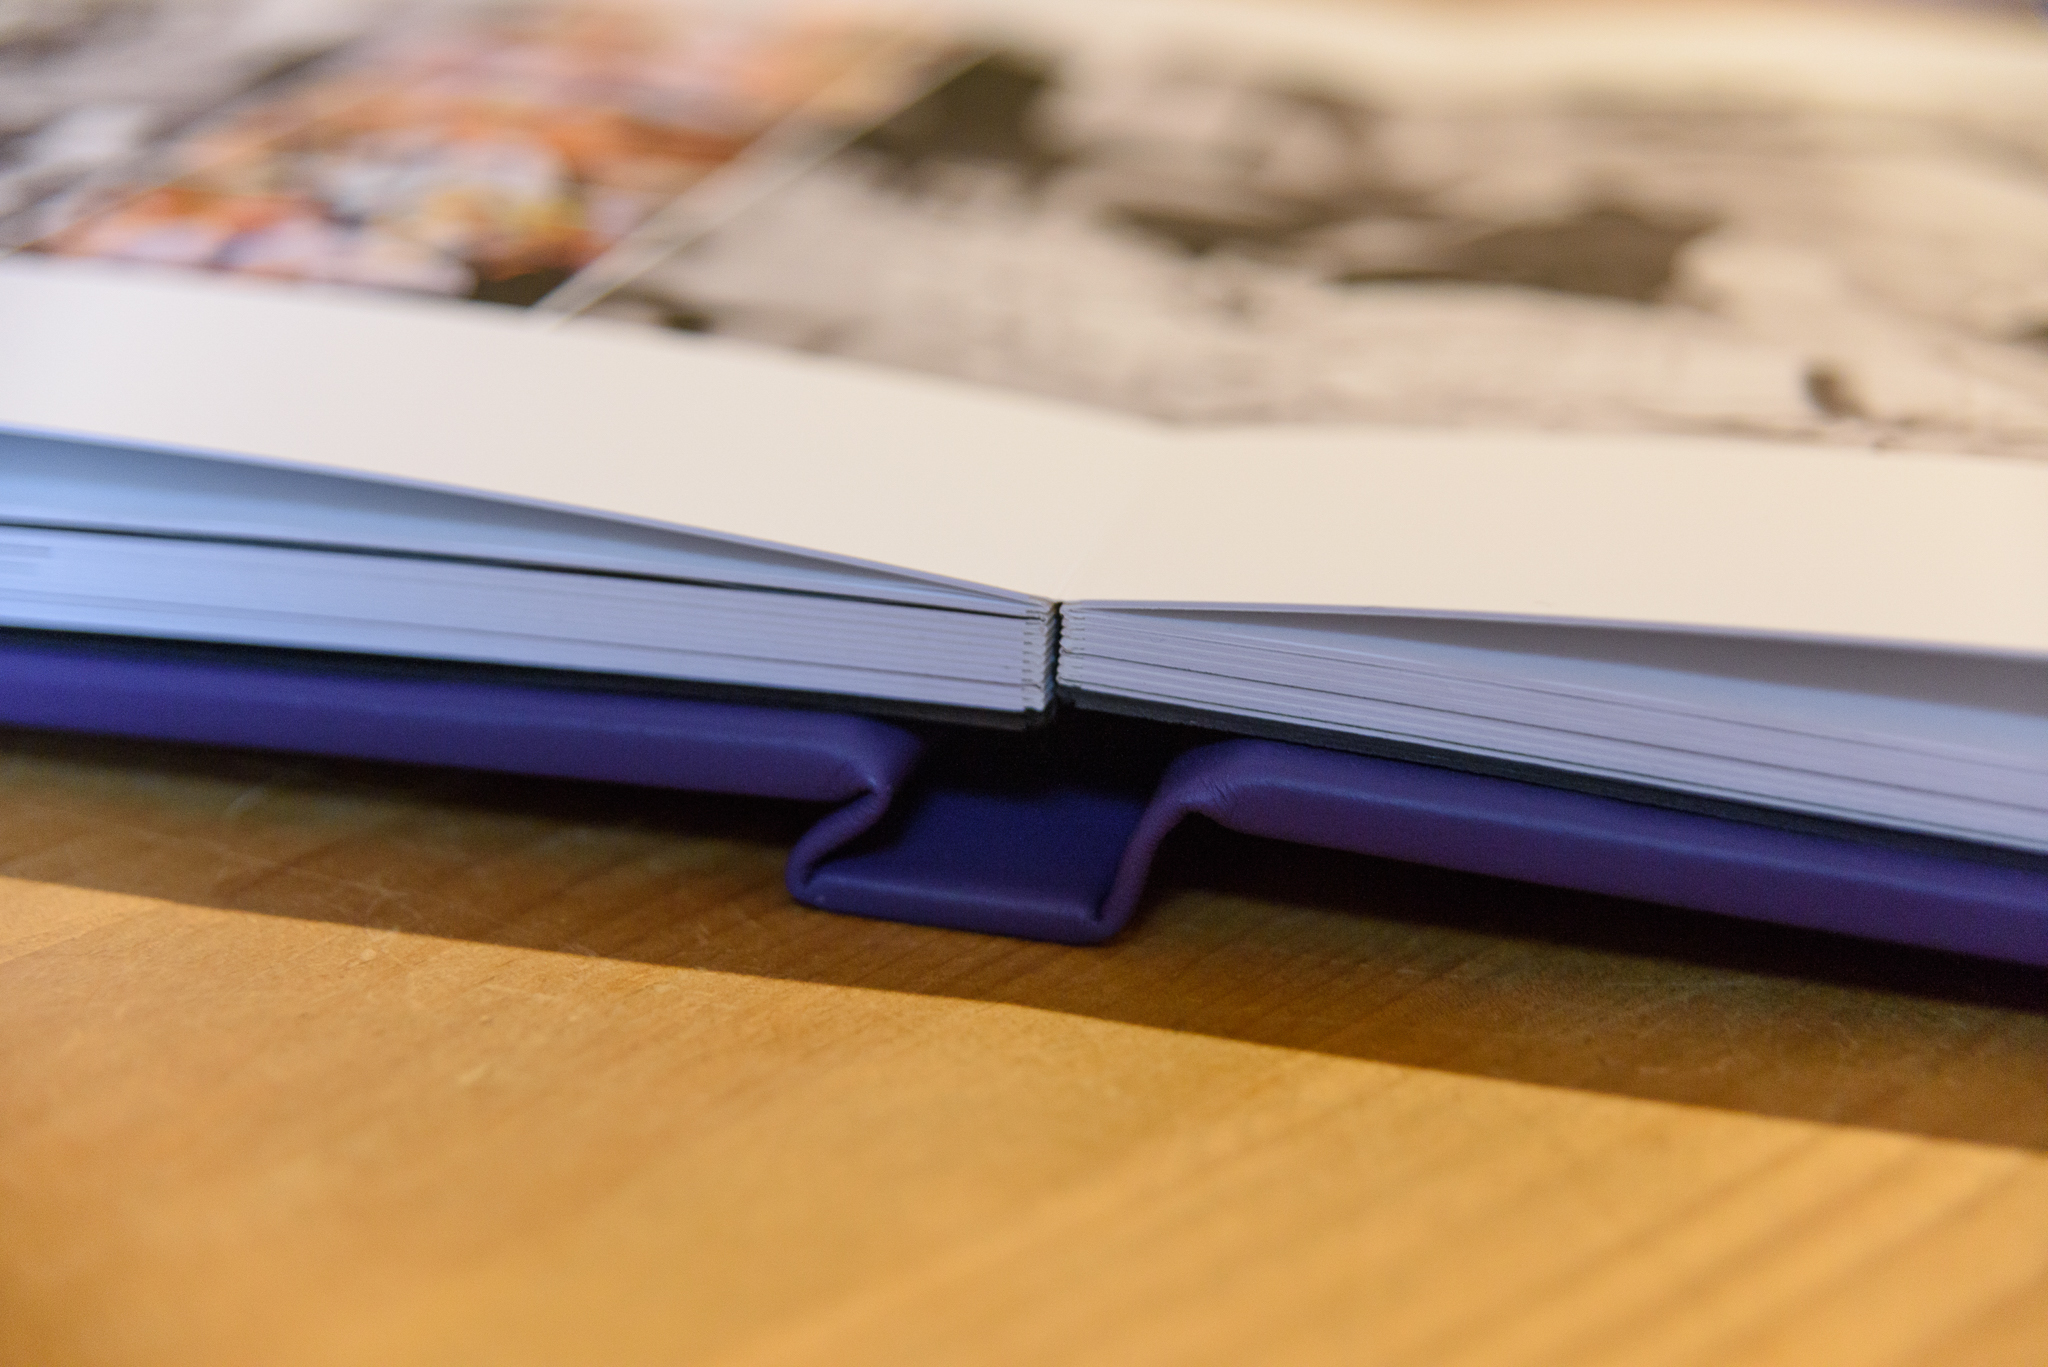 wedding album spine with purple cover